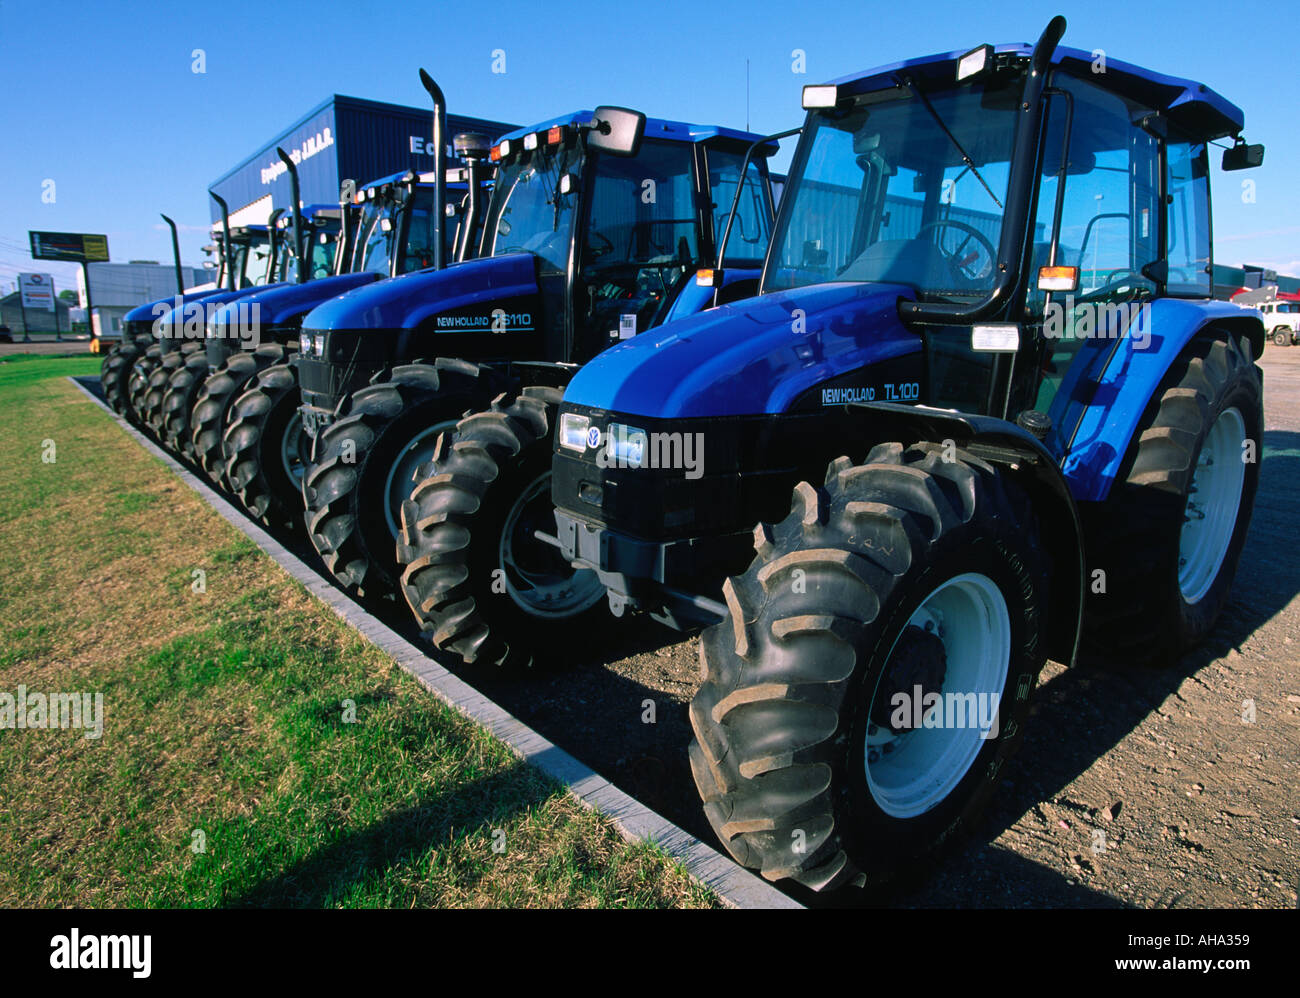 Tractors For Sale Stock Photos & Tractors For Sale Stock Images - Alamy